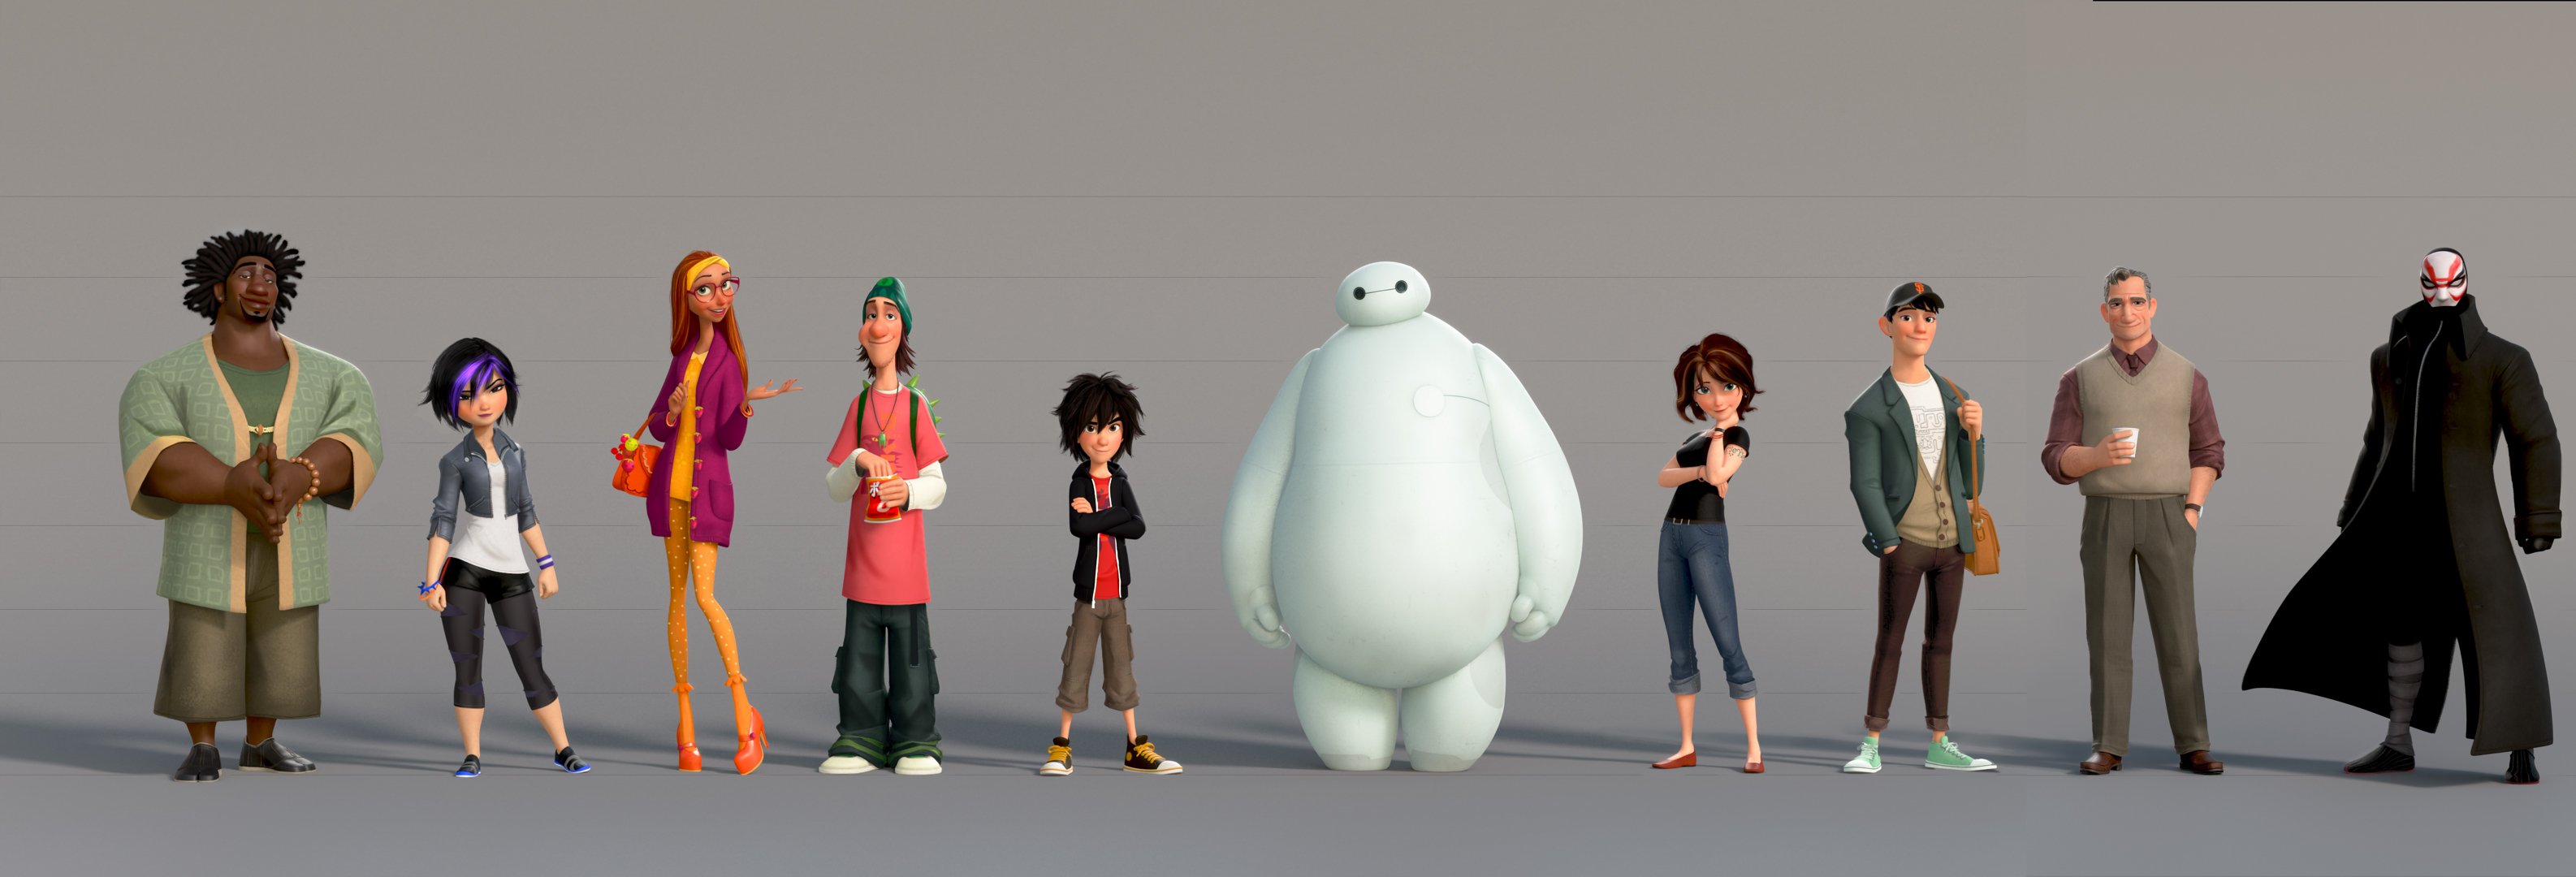 BOOK REVIEW] The Art of Big Hero 6 | Rotoscopers